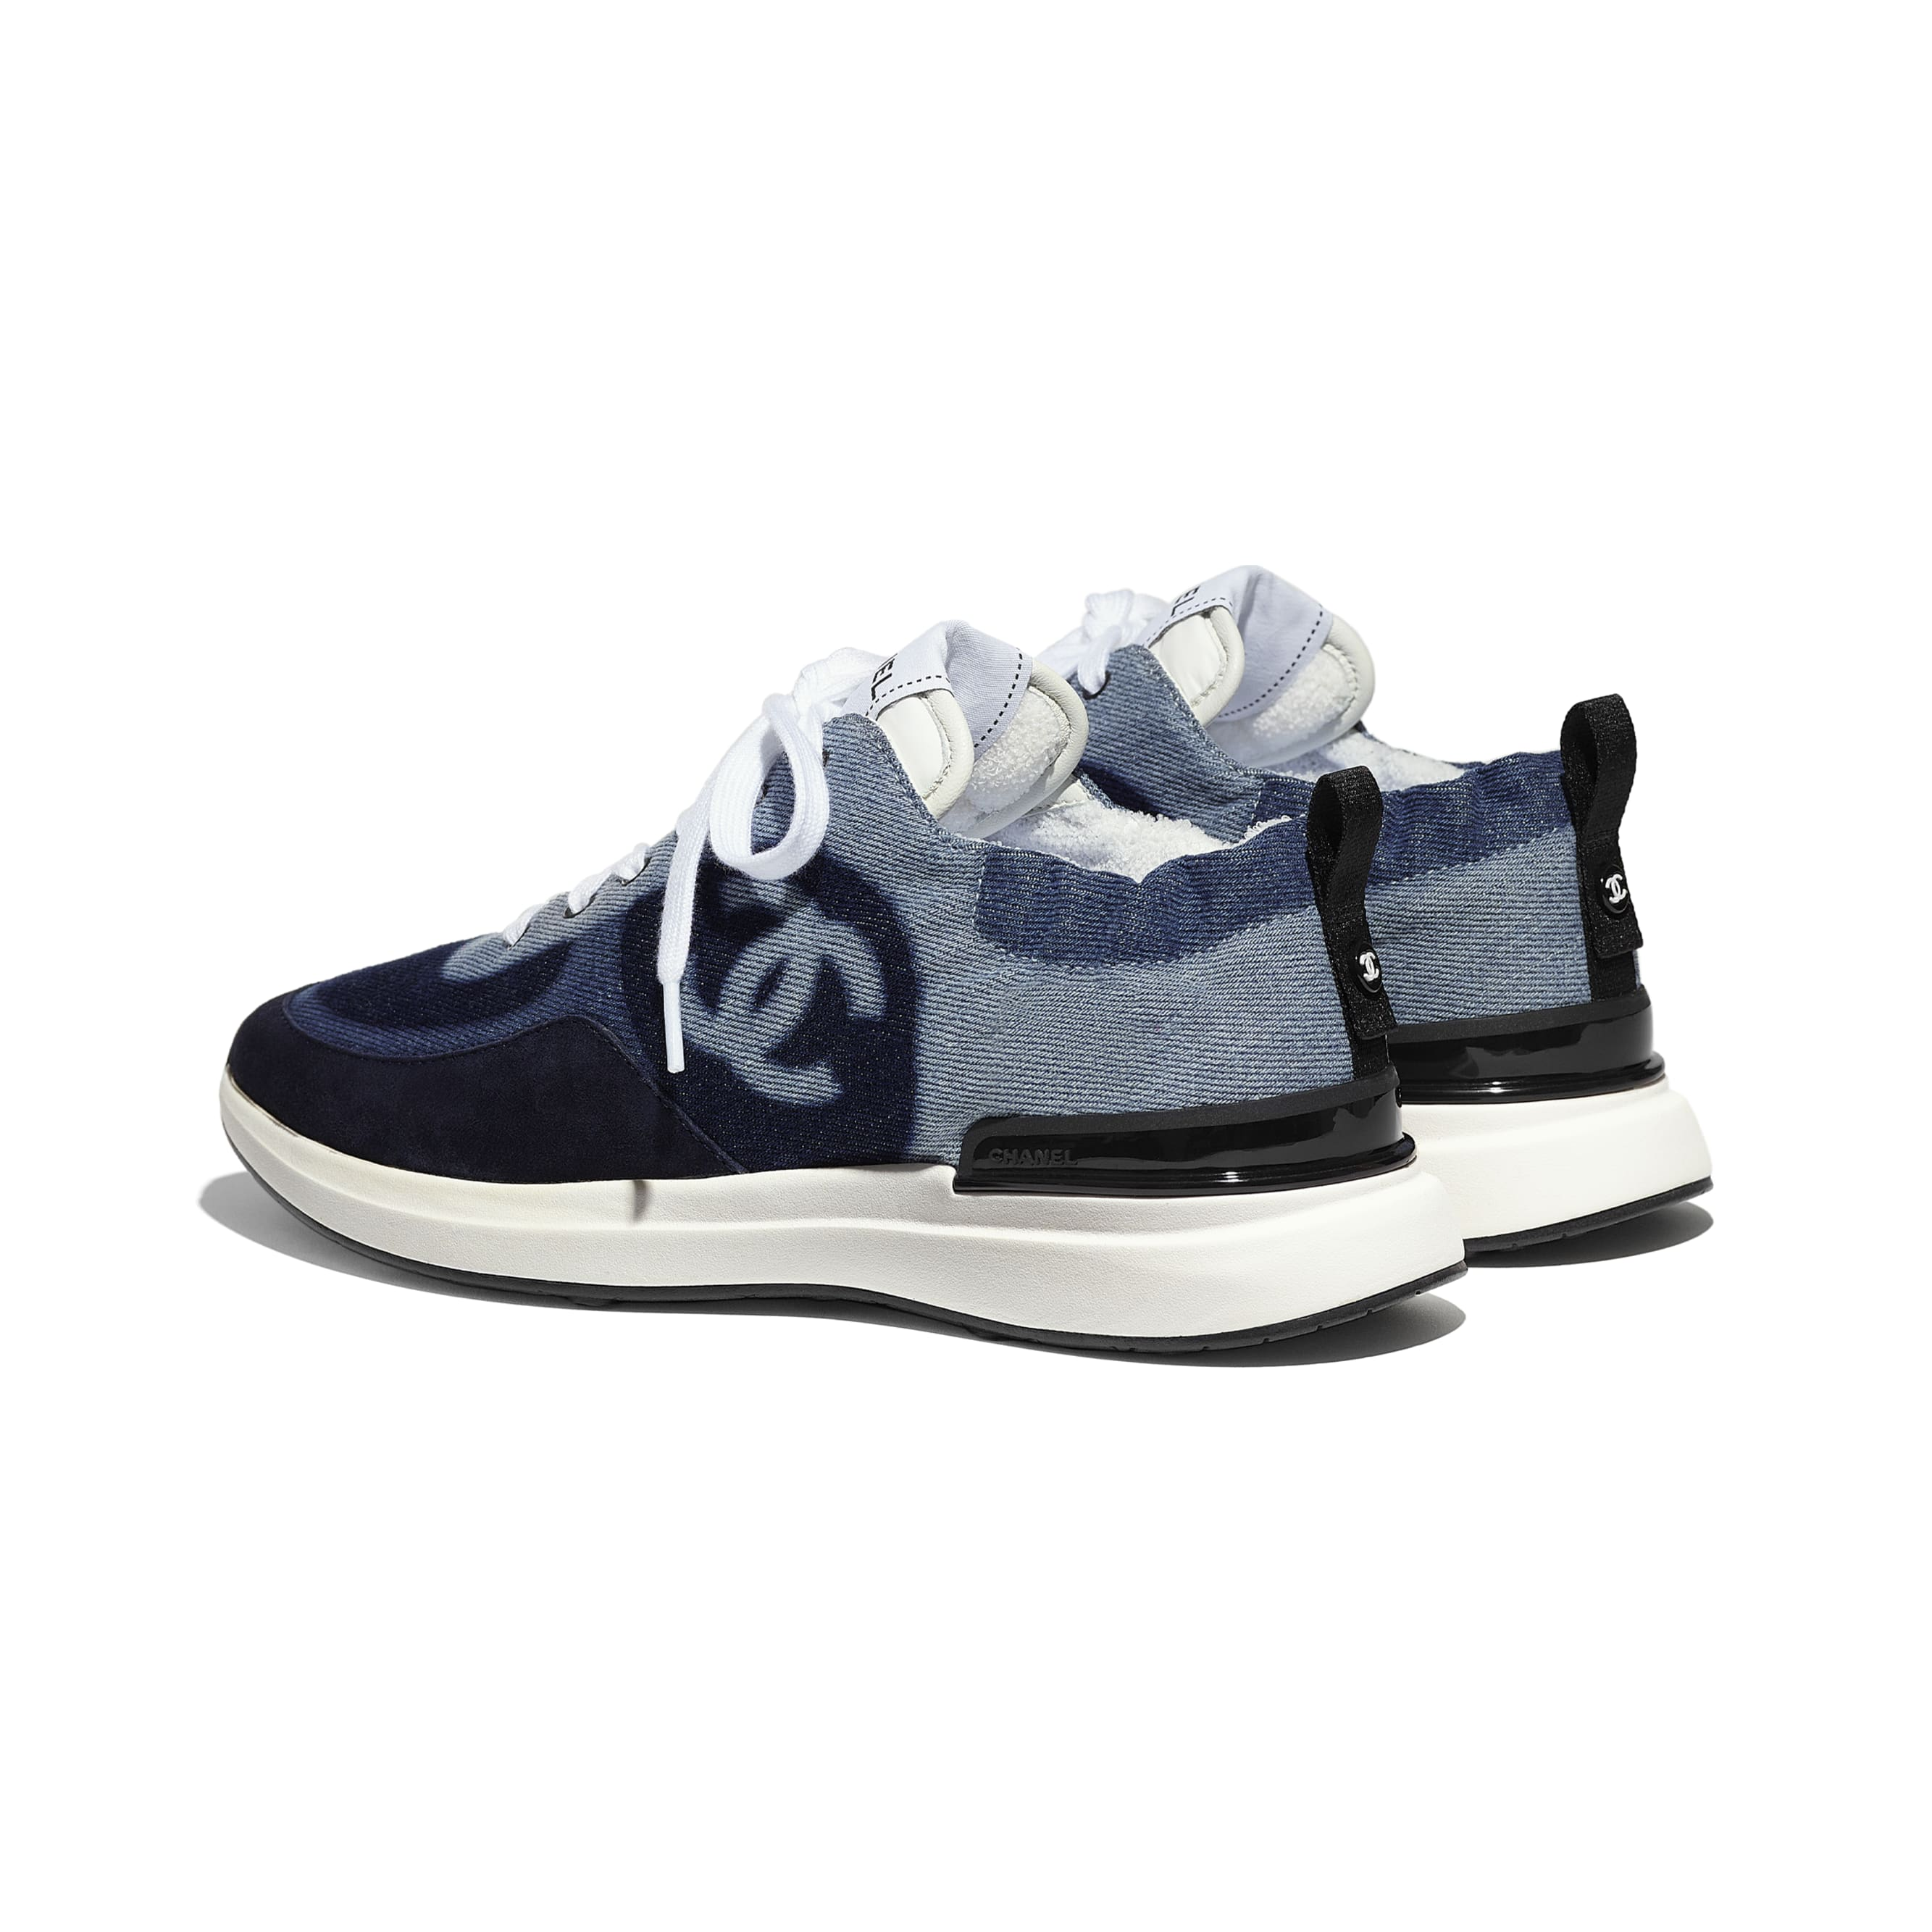 Trainers - Blue - Denim & Suede Calfskin - CHANEL - Other view - see standard sized version